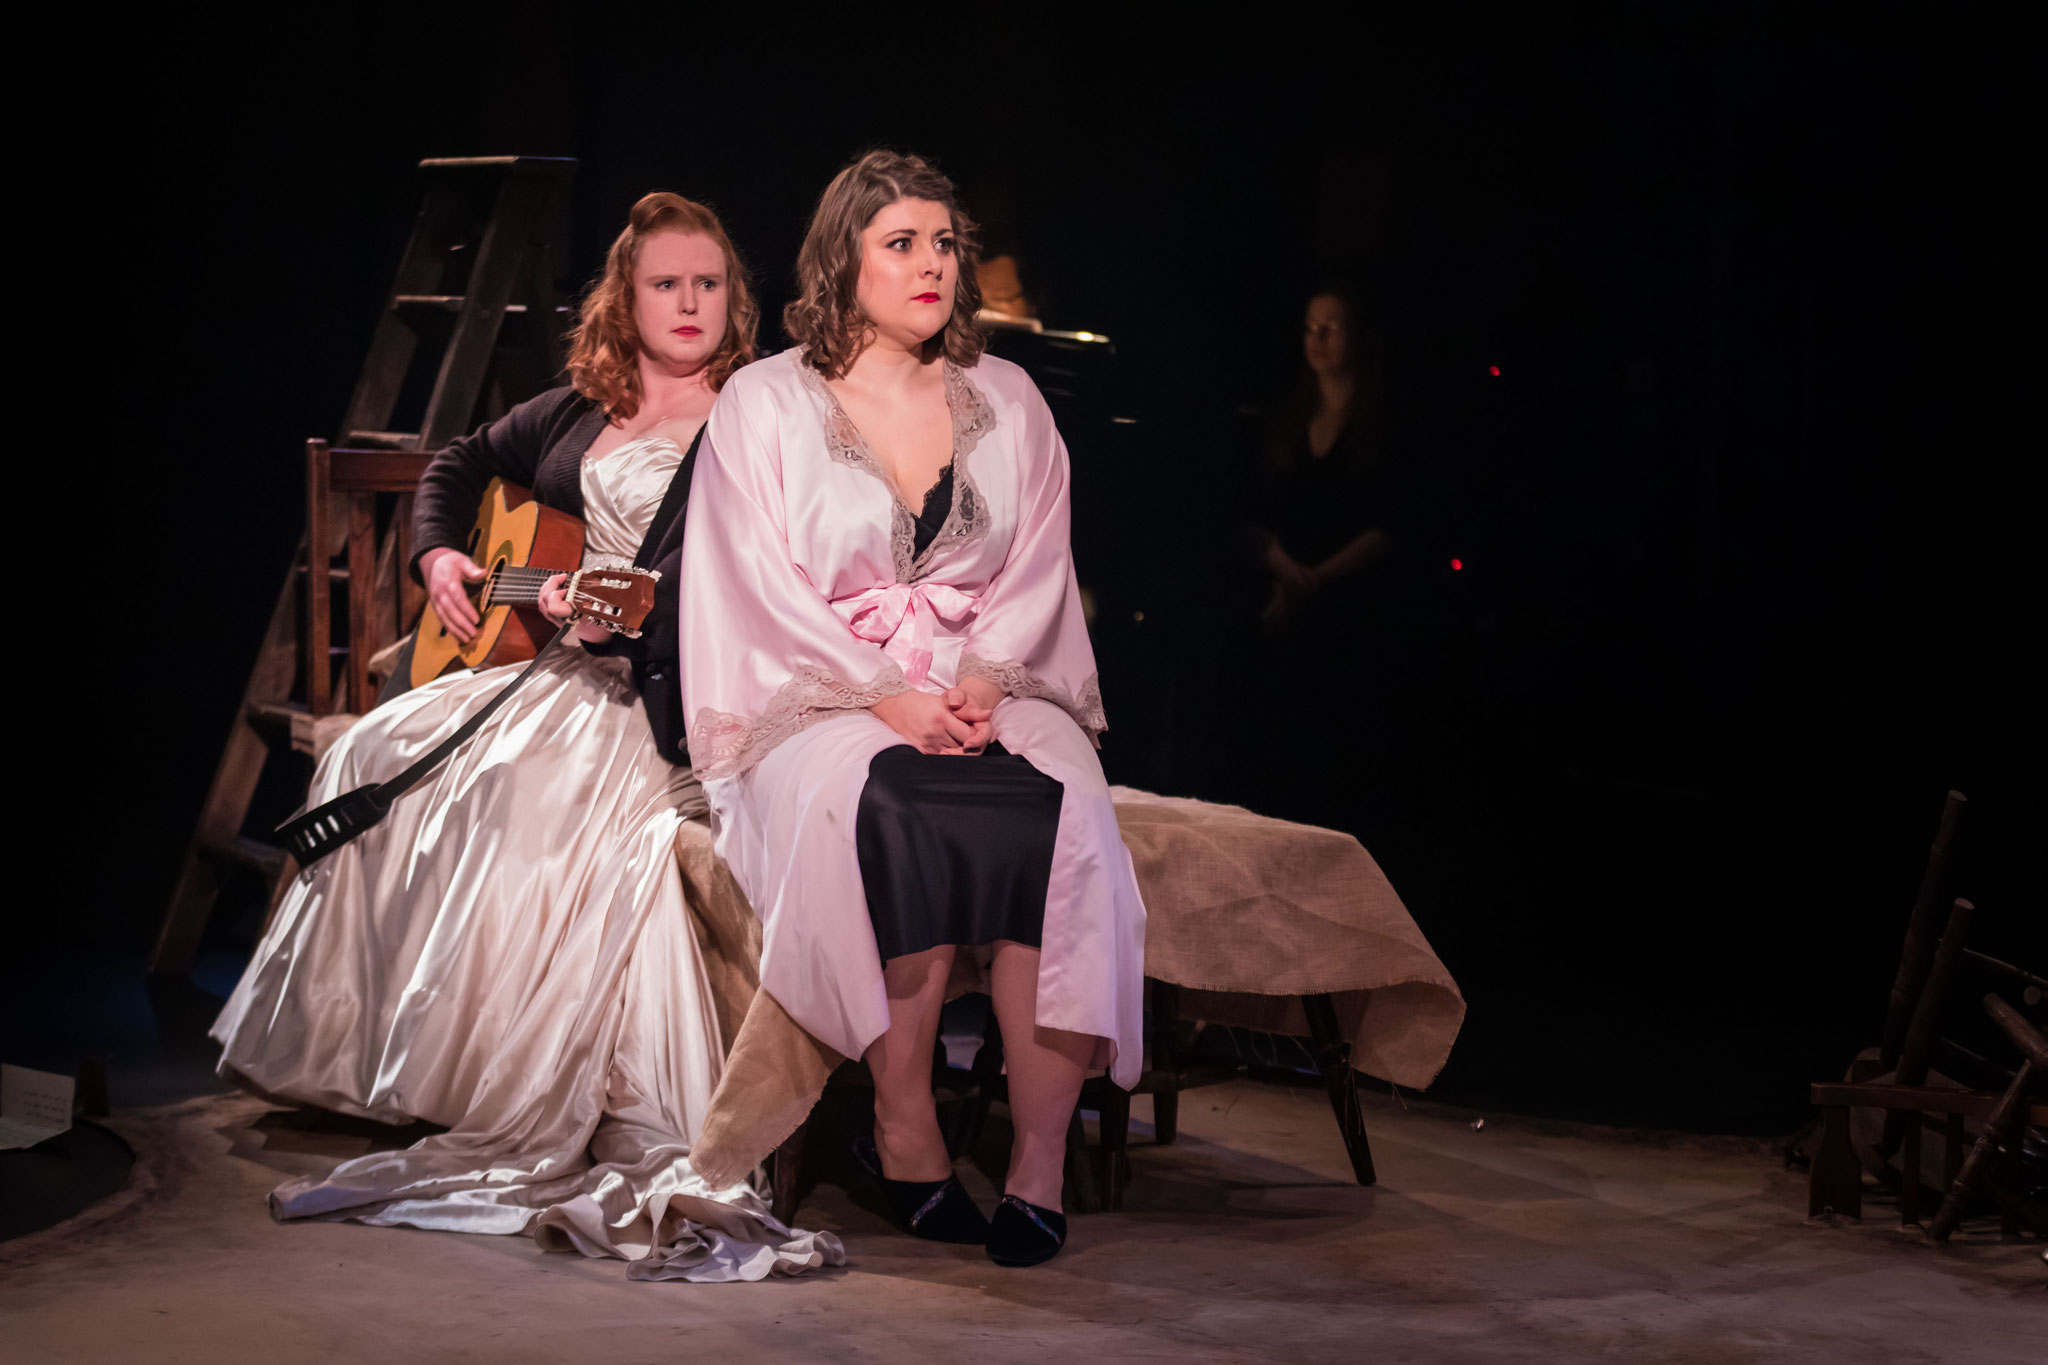 Countess Rosina & Susanna (Harriet Burns), Le nozze di Figaro: Guildhall School Opera Scenes November 2018 - Photo courtesy of FGStudios